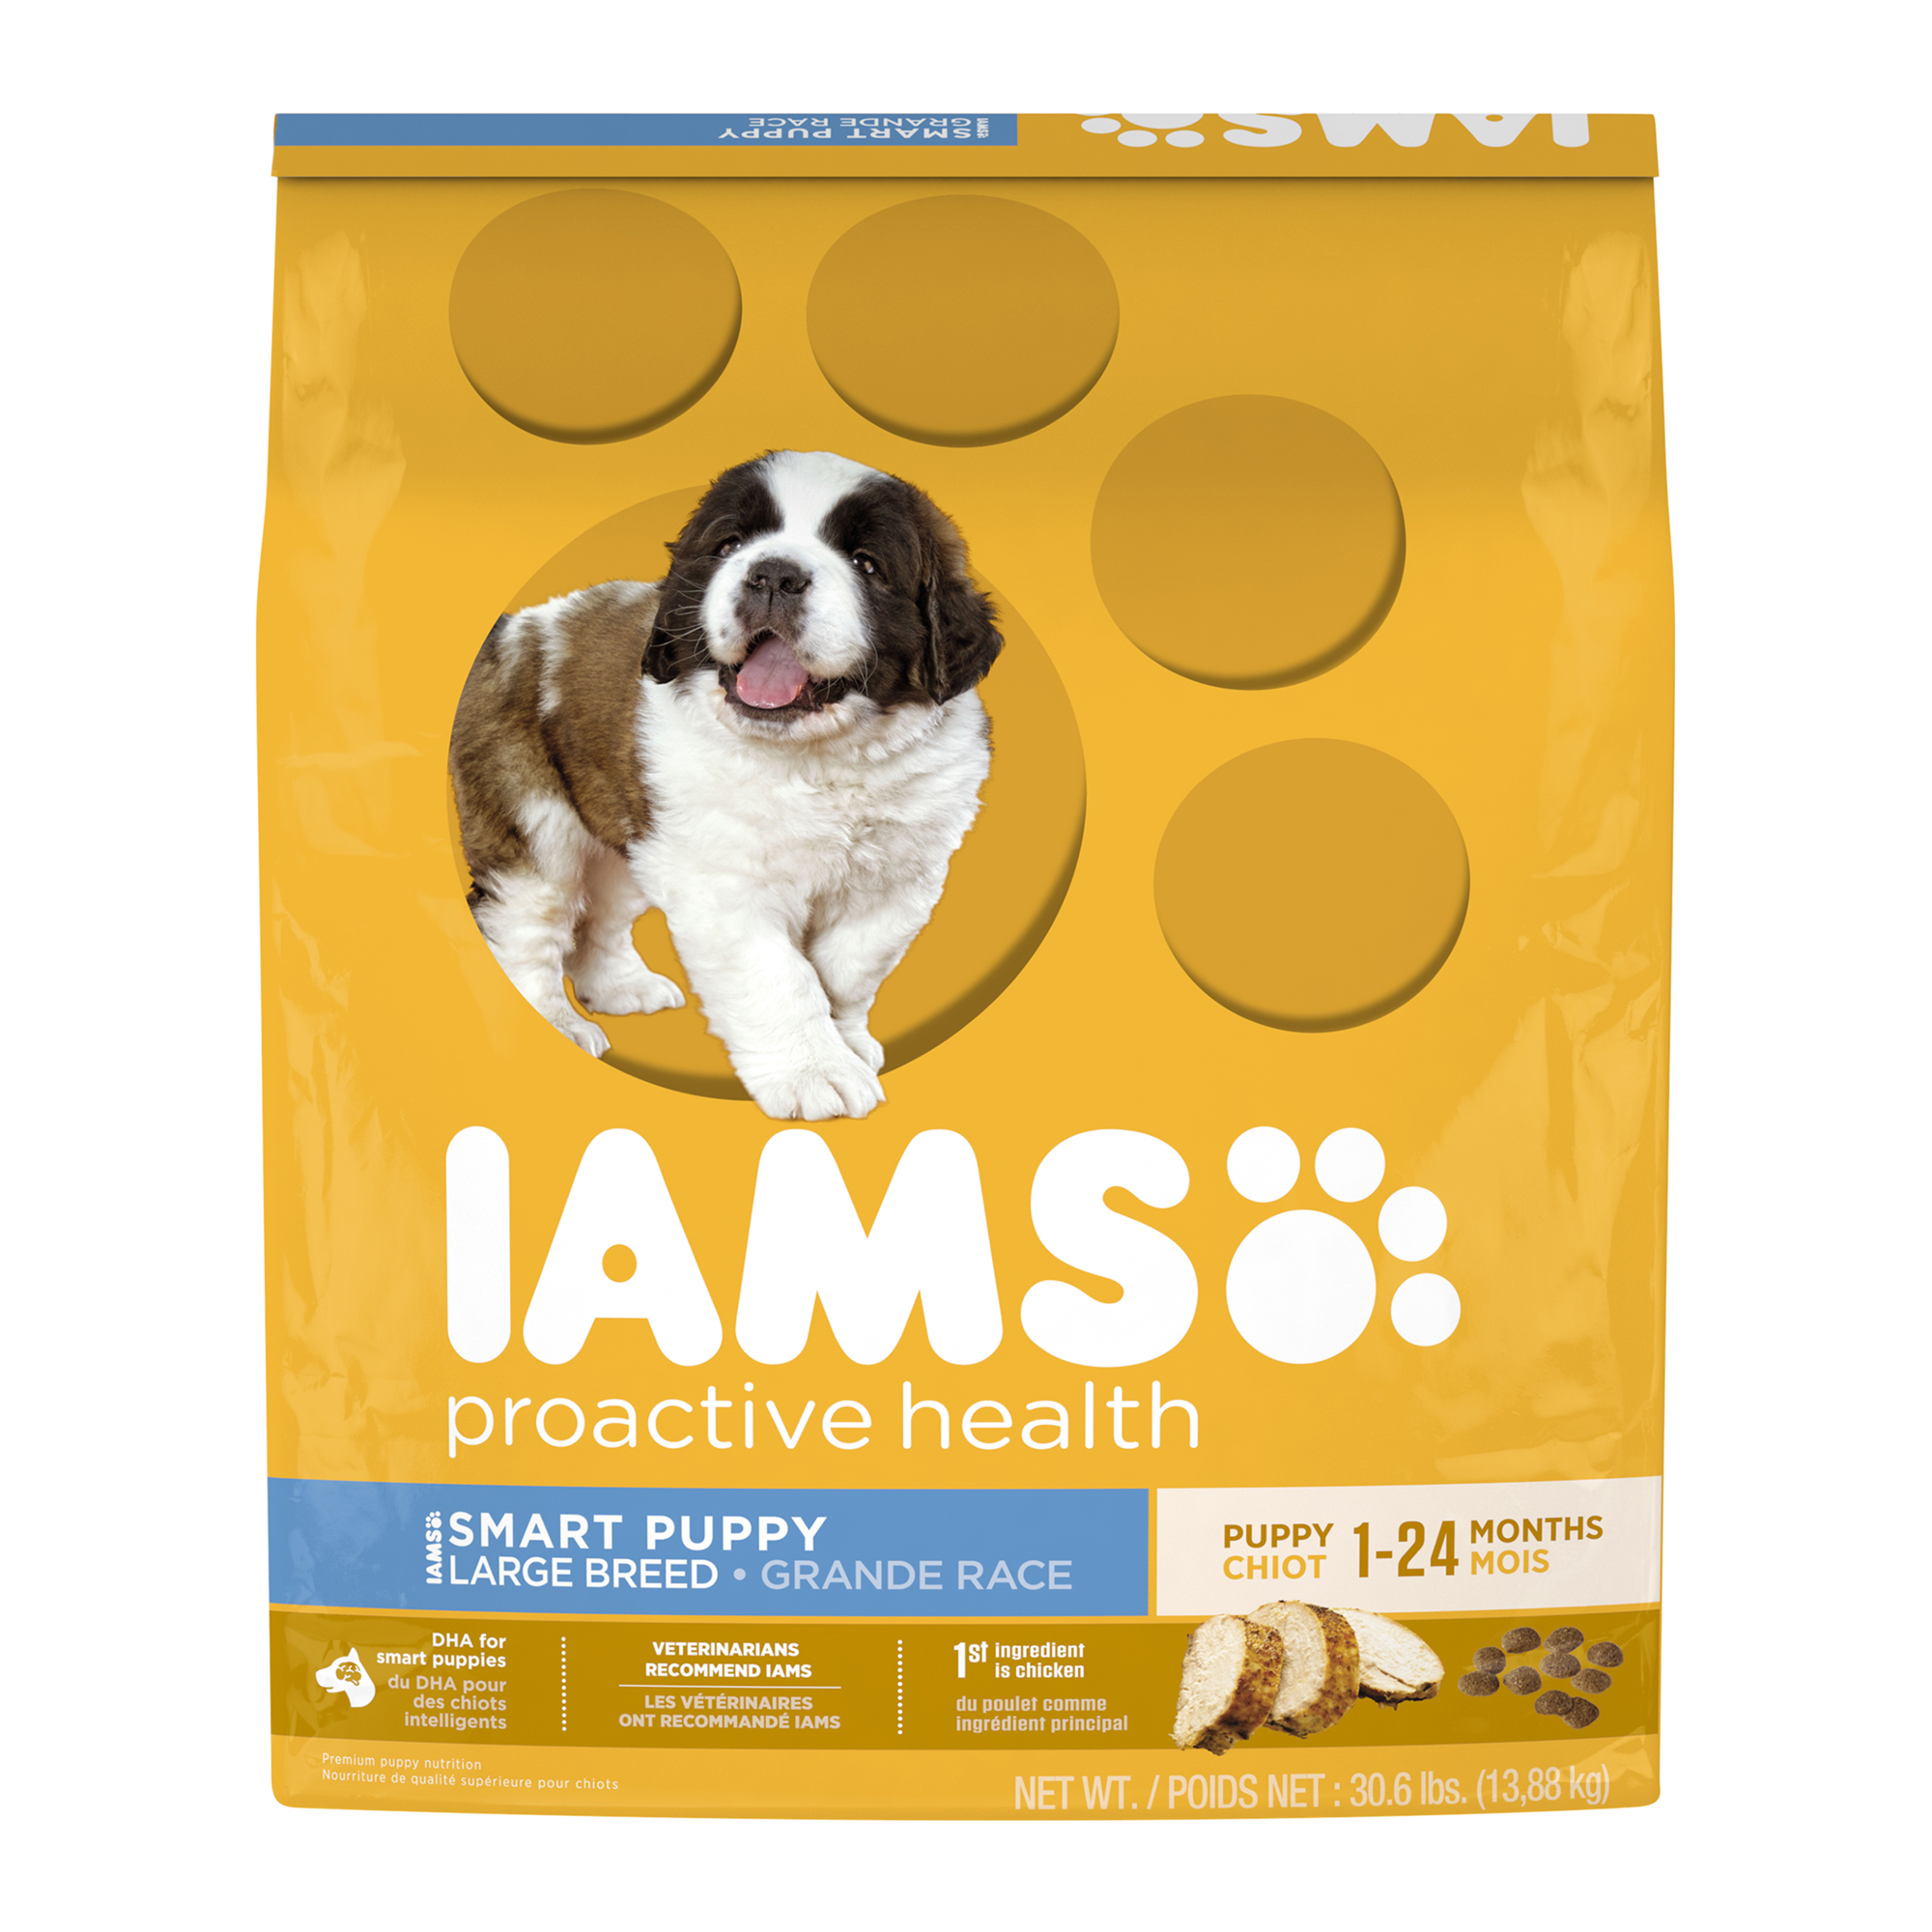 IAMS PROACTIVE HEALTH Smart Puppy Large Breed Dry Puppy Food 30.6 Pounds by Mars Petcare